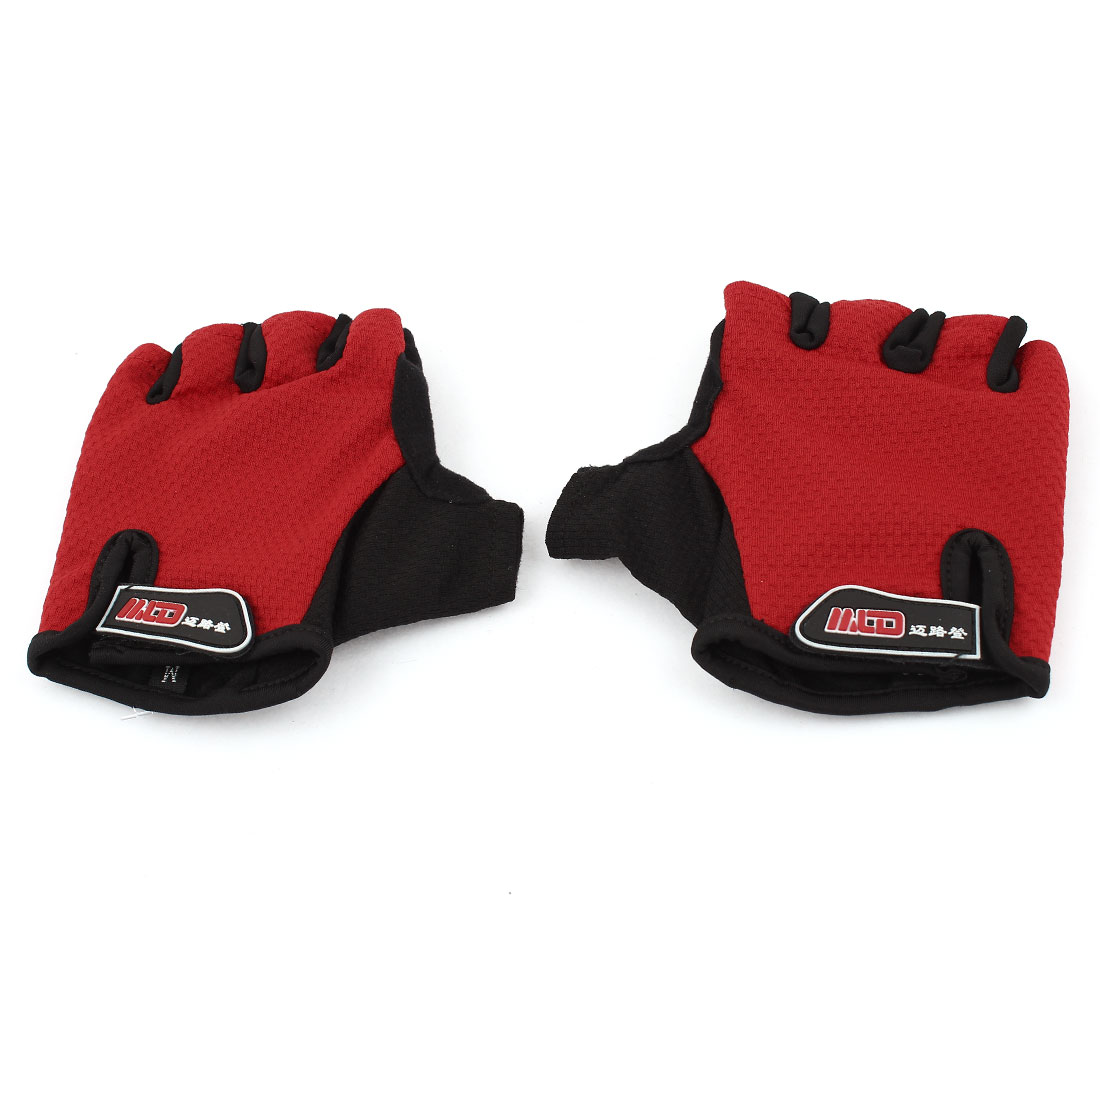 Outdoor Red Soft Sponge Pad Half Fingers Sports Gloves Protector Pair